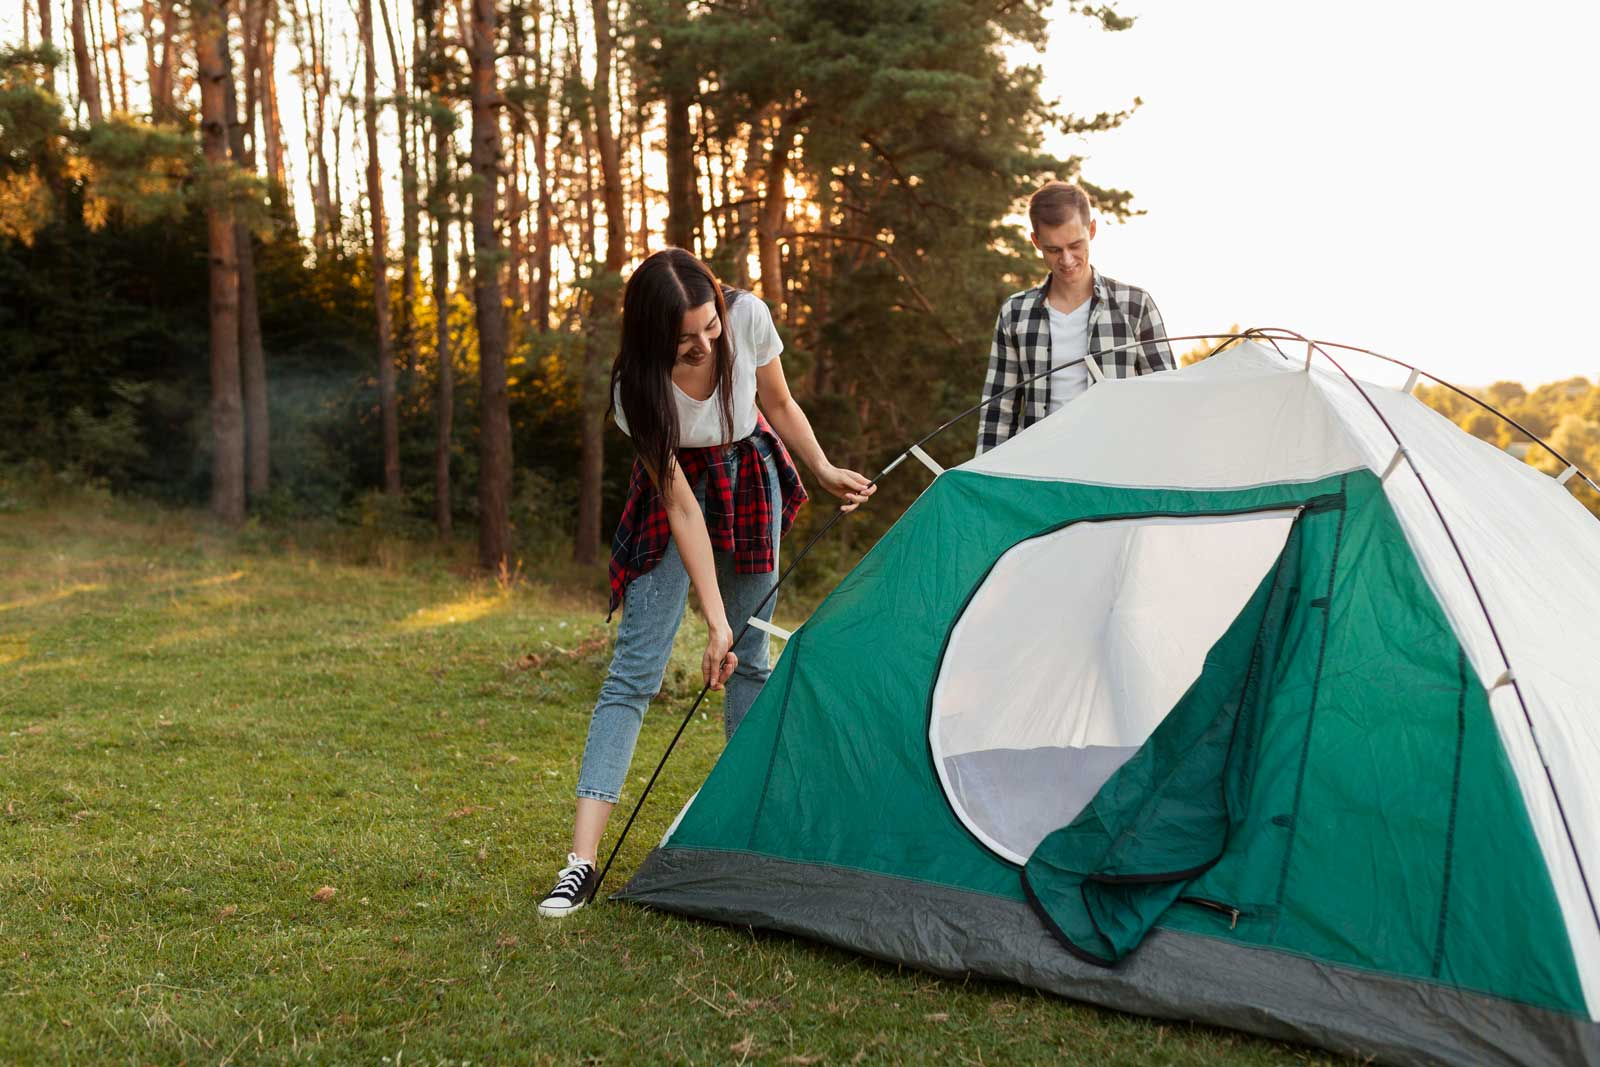 Pitch Your Own Tent